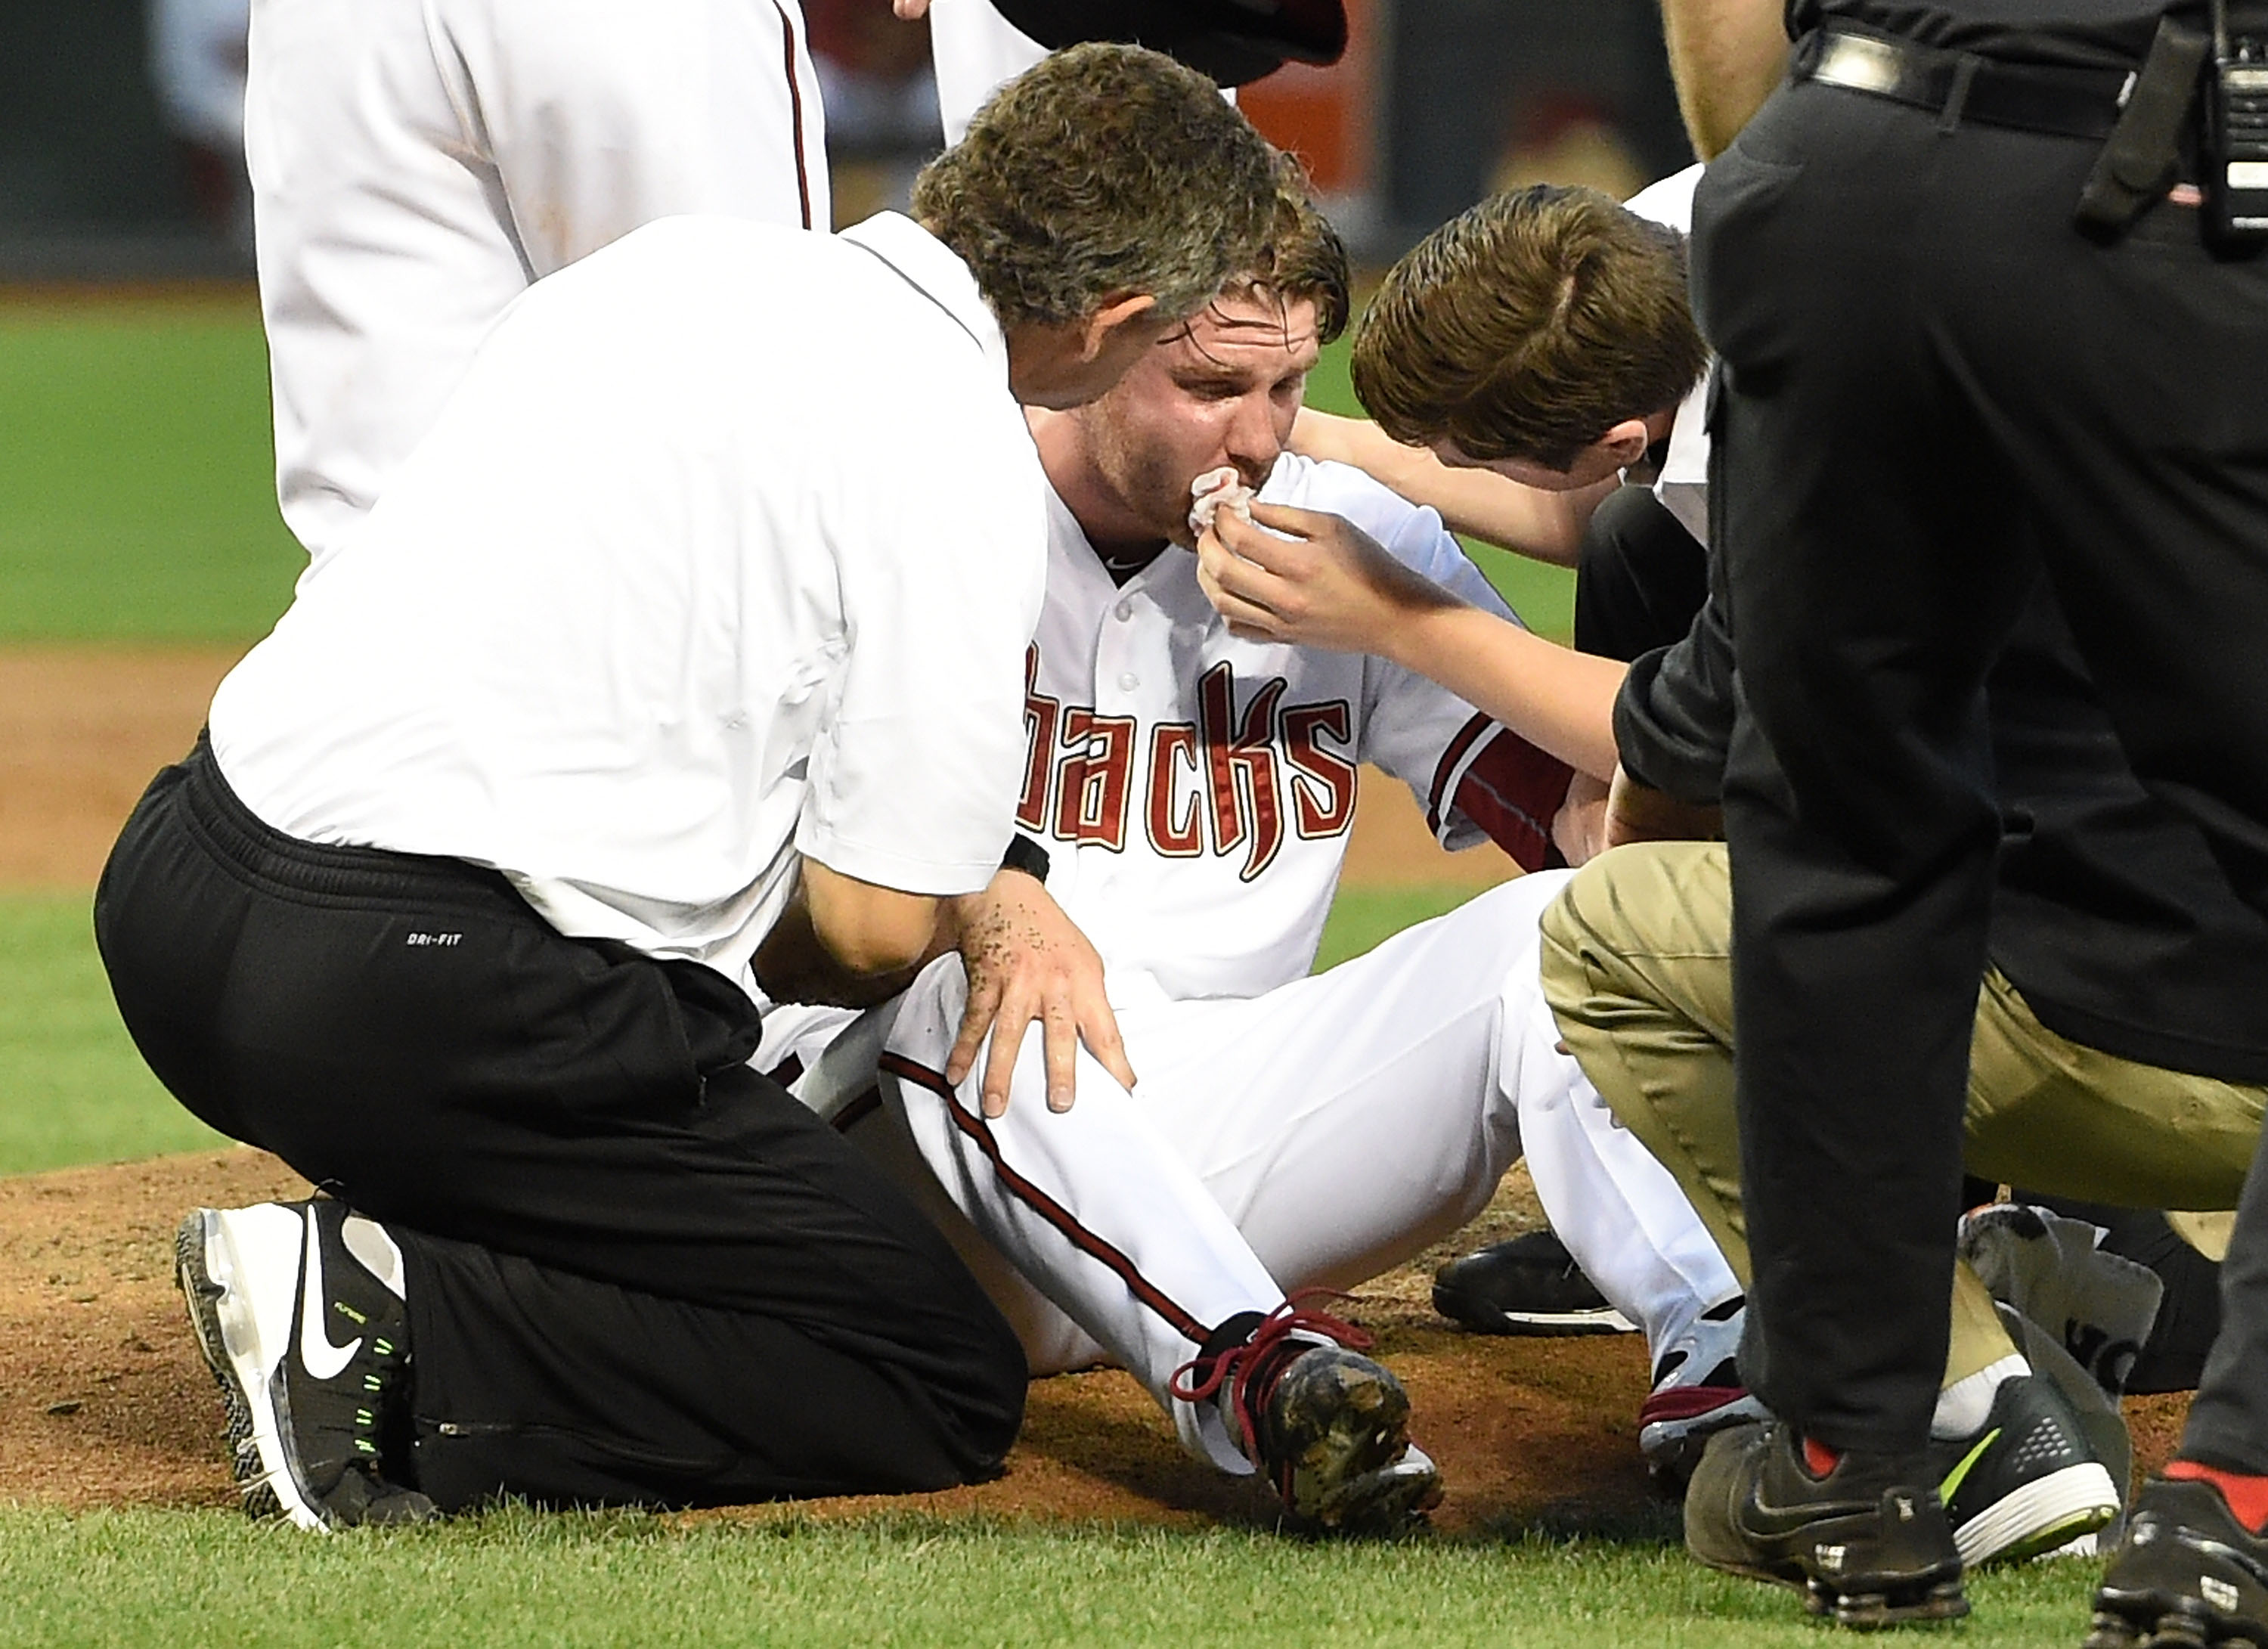 Archie Bradley #25 of the Arizona Diamondbacks is tended to on the pitcher's mound after getting hit in the face with a line drive against the Colorado Rockies at Chase Field on April 28, 2015 in Phoenix, Arizona.  (Photo by Norm Hall/Getty Images)